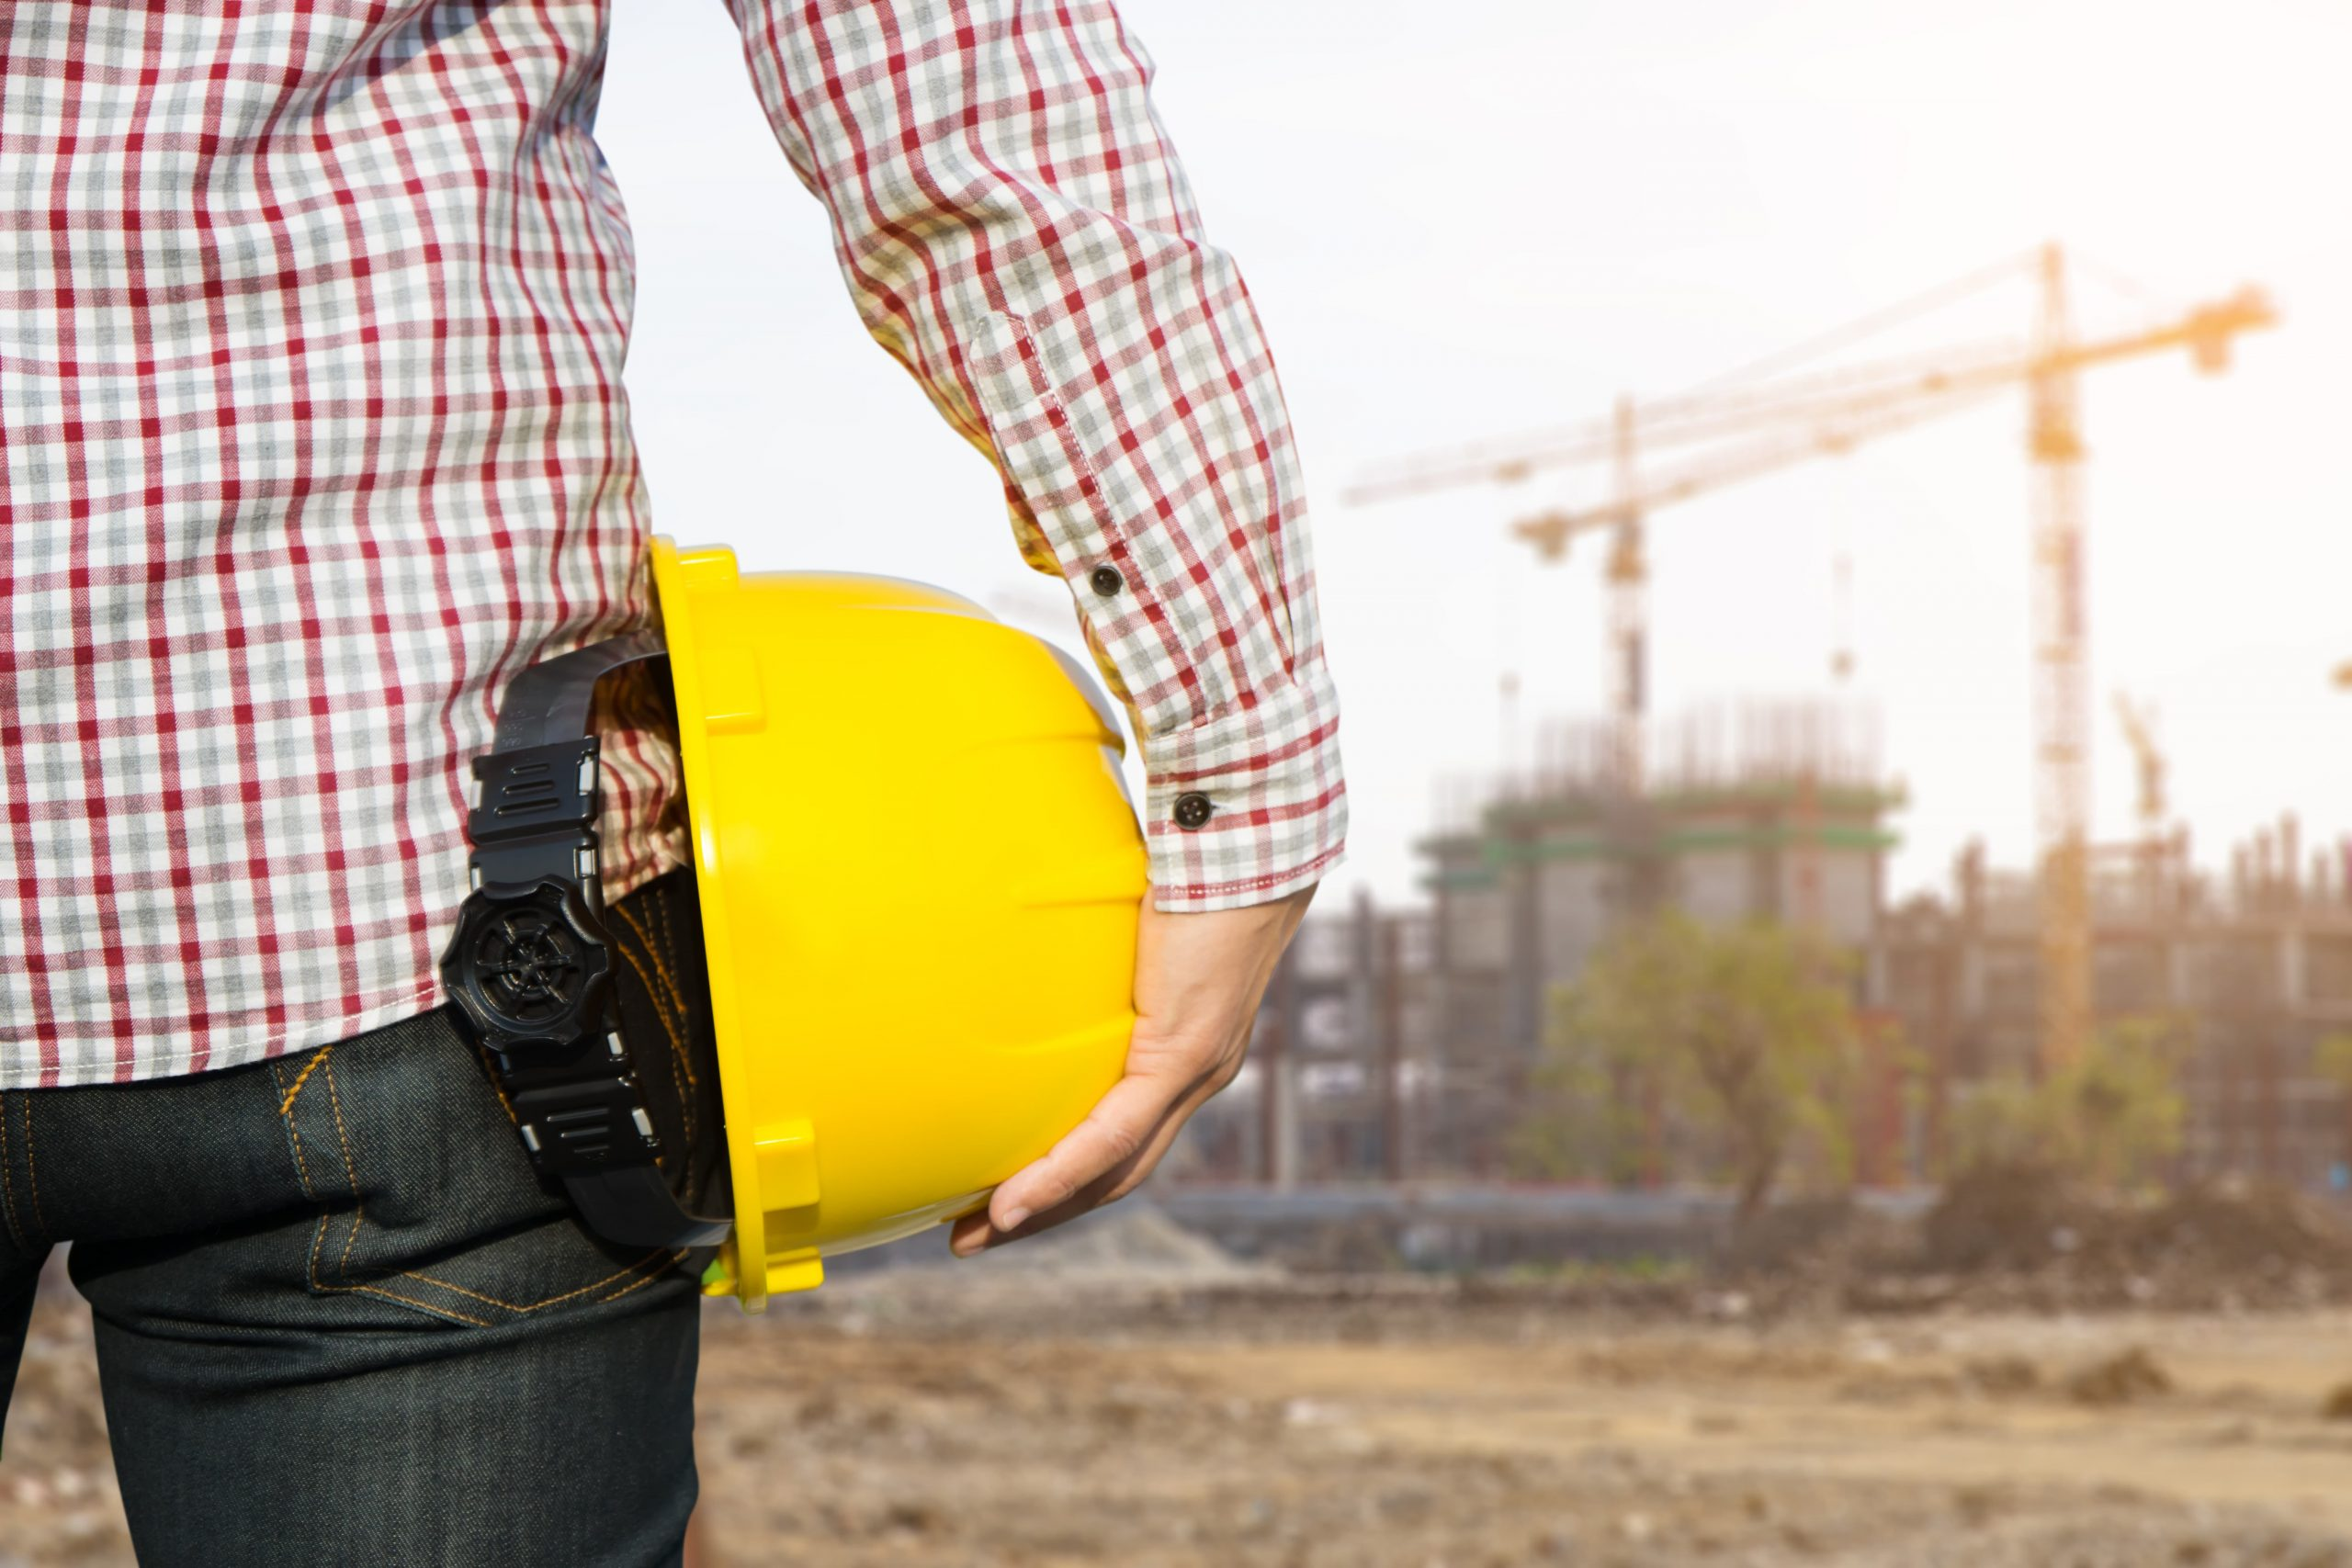 £20k Fine for Construction Contractor after Failing Basic Health & Safety Standards